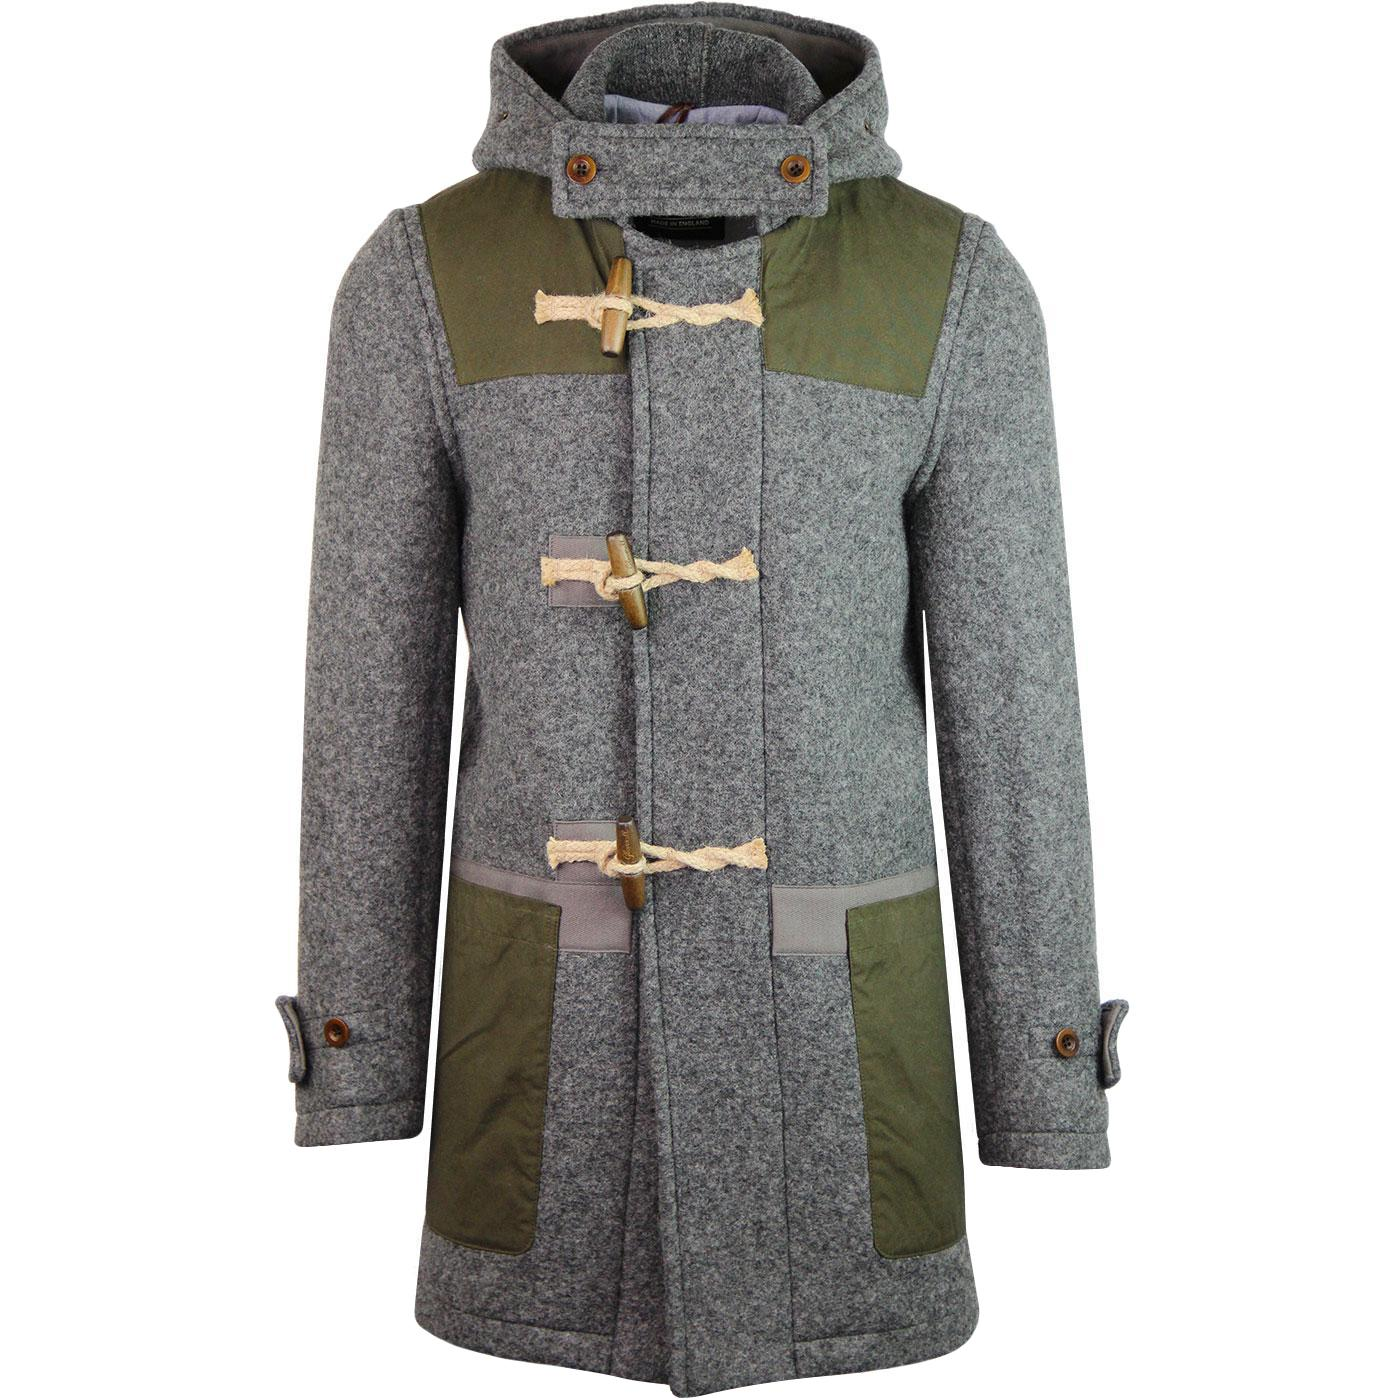 Yarmouth Monty GLOVERALL Mod Wax Patch Duffle Coat